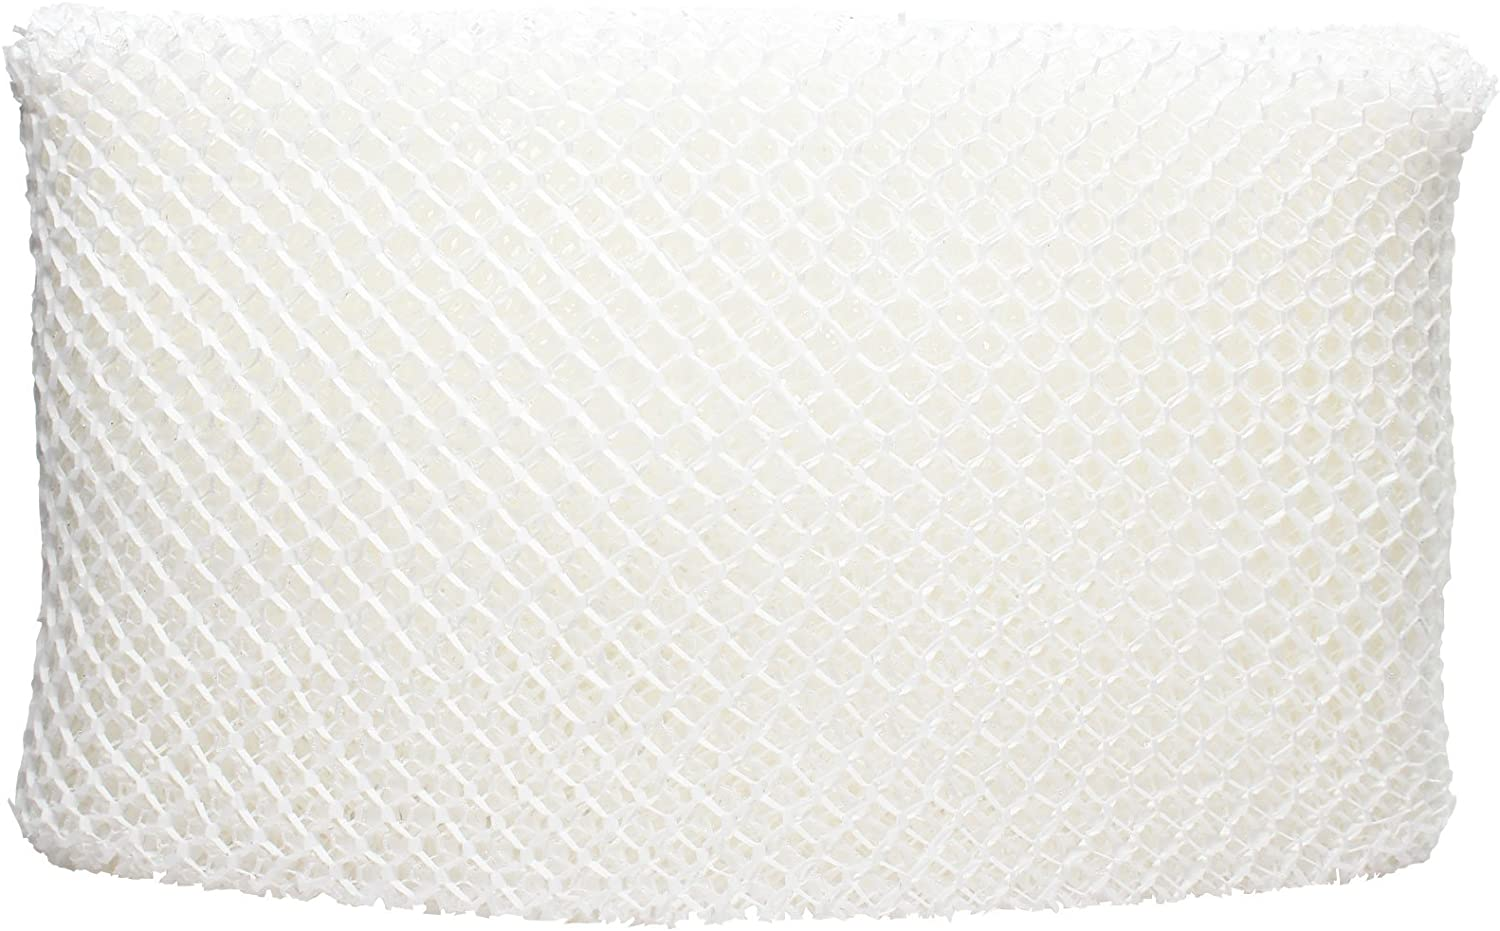 Upstart Battery Replacement for Honeywell HCM-6011 Humidifier Filter - Compatible with Honeywell HC-14 Air Filter